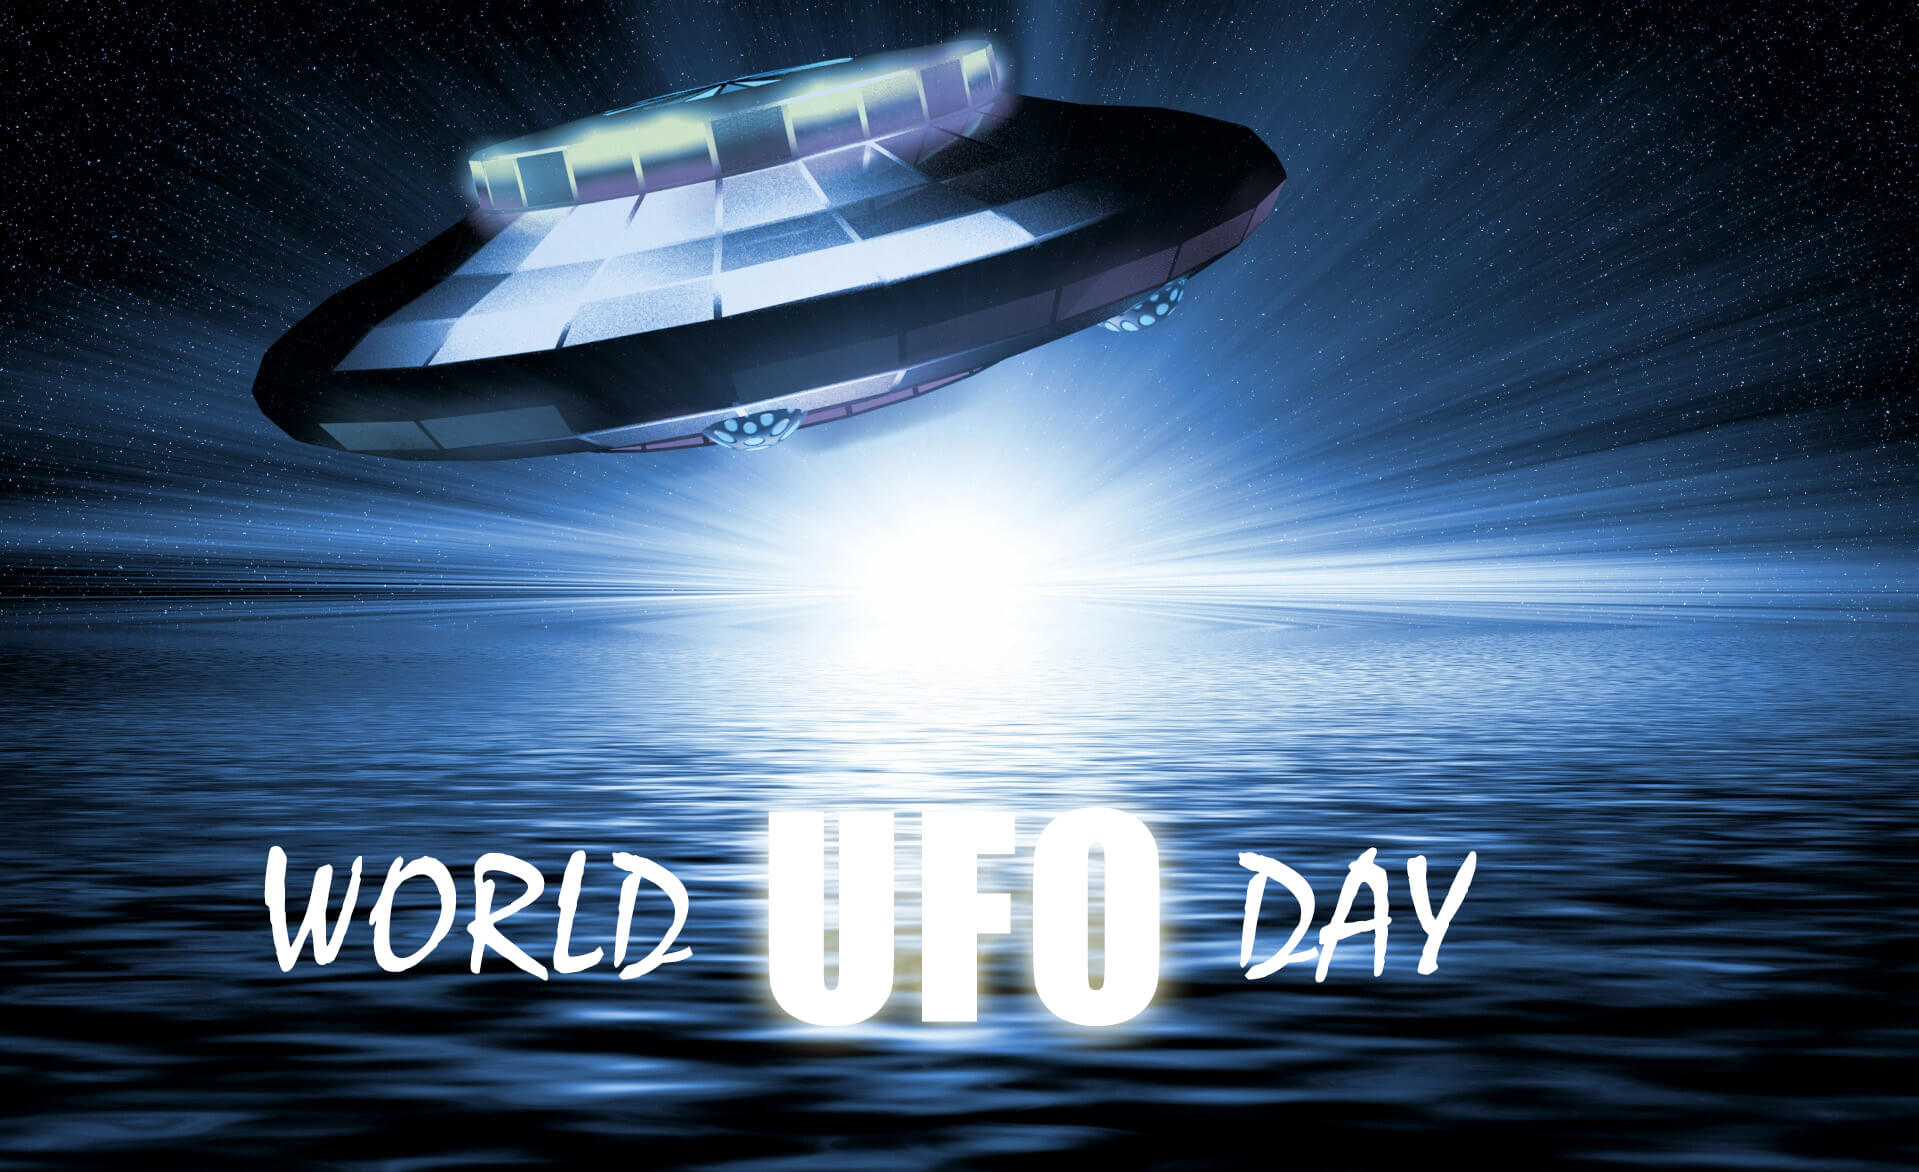 world ufo day unidentified flying object saucer july wallpaper